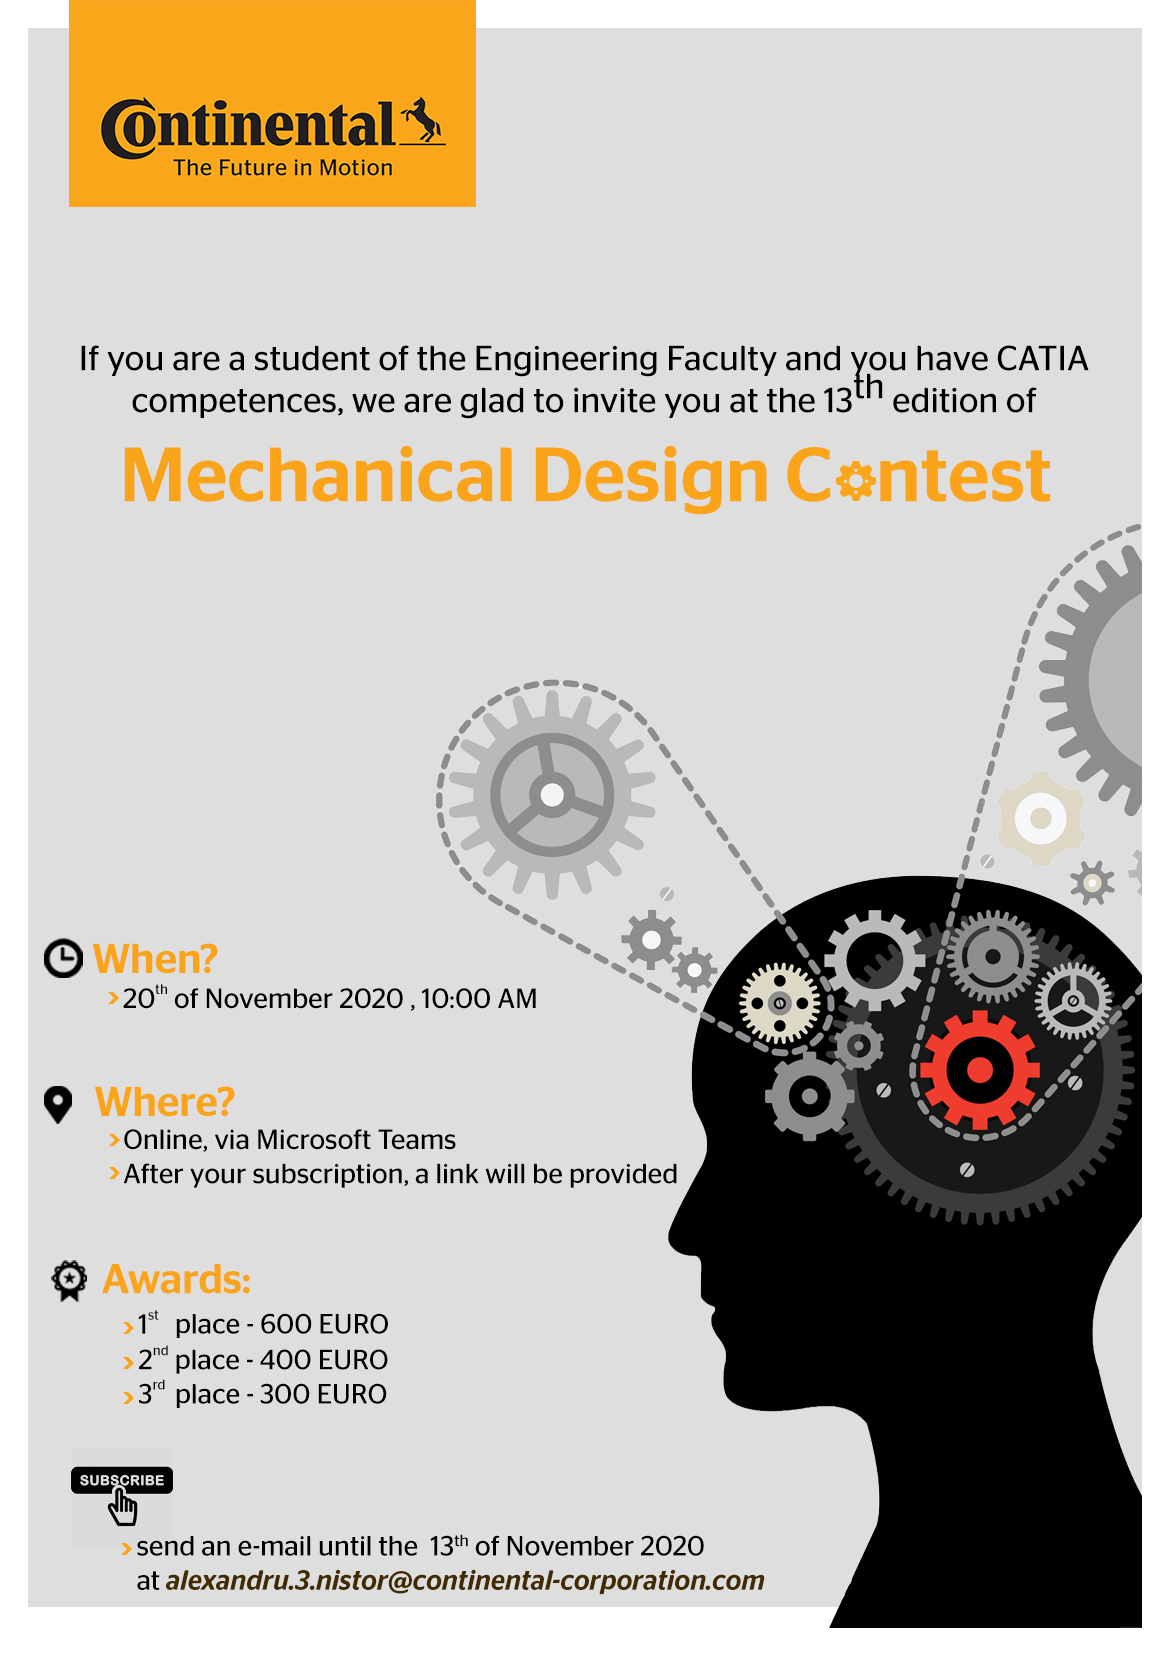 Continental-Mechanical Design Contest